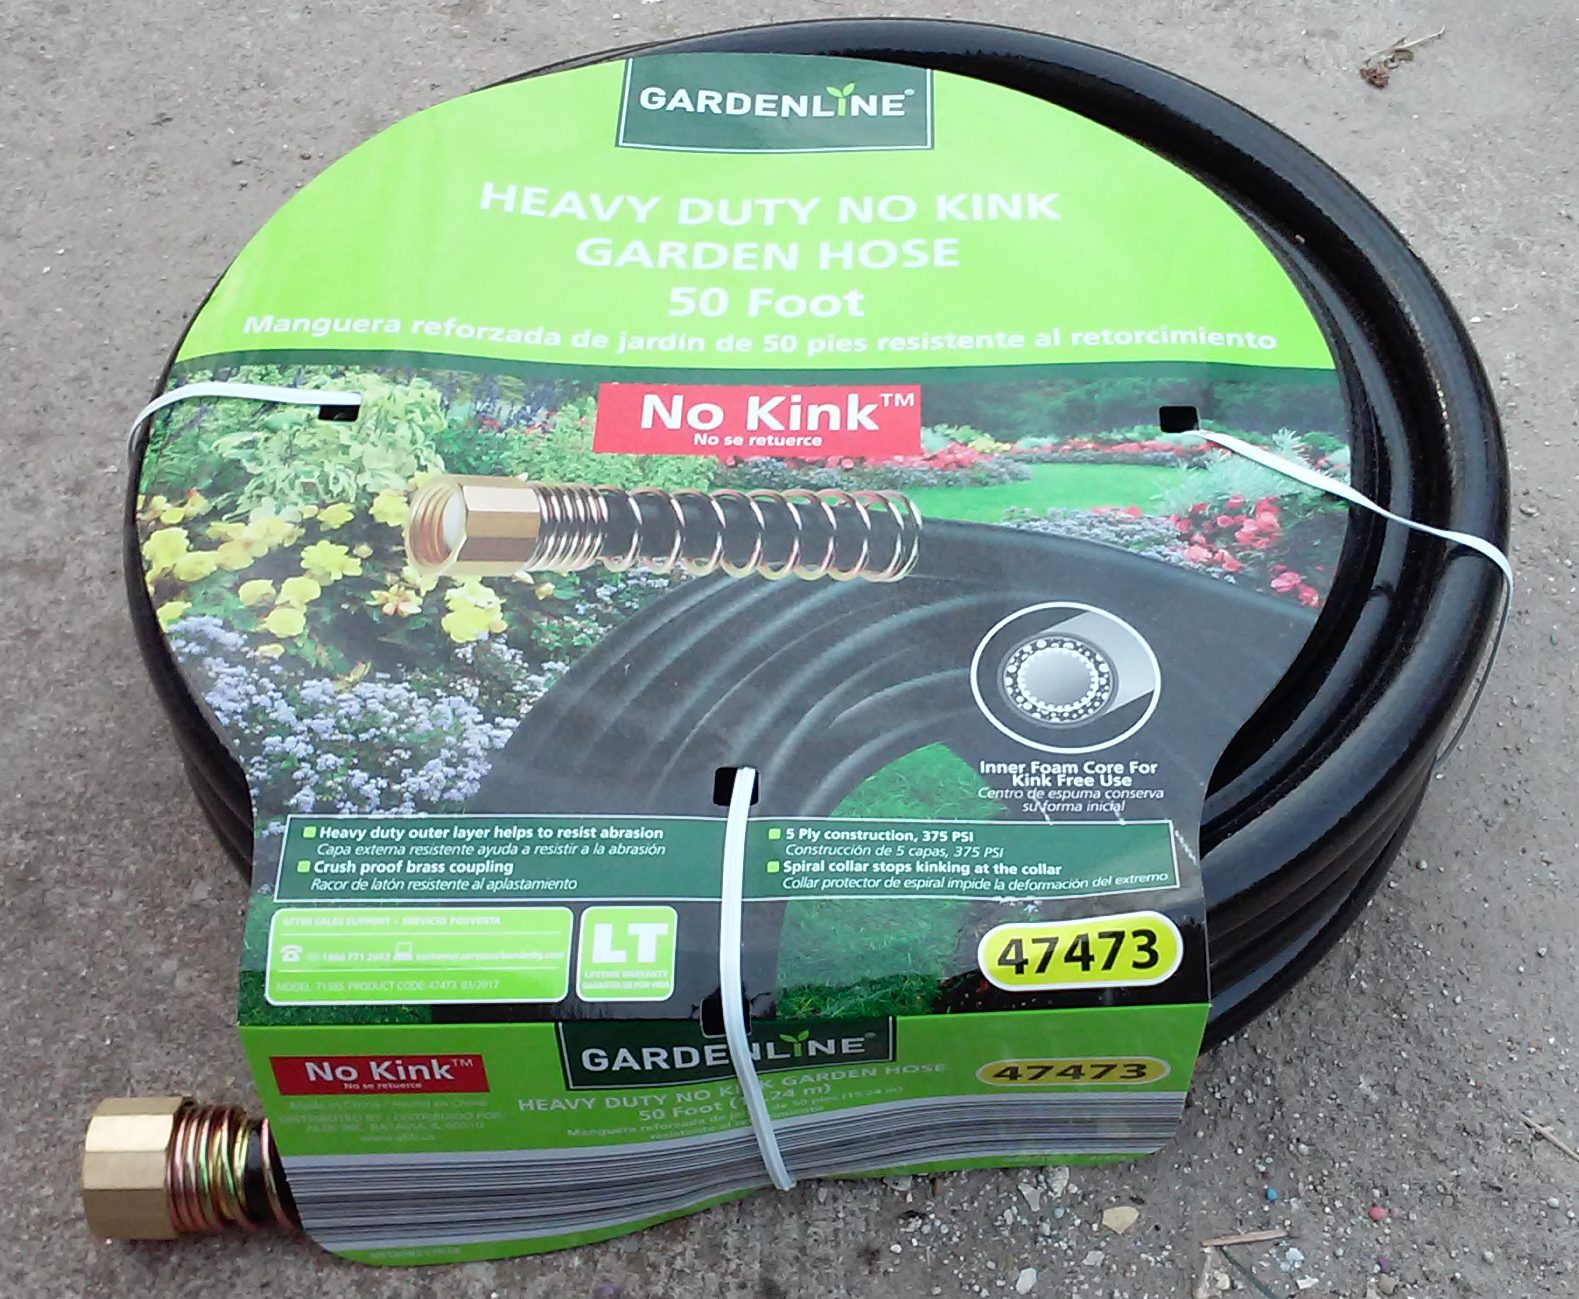 Gardenline Heavy Duty No Kink Garden Hose 50 Foot ALDI REVIEWER